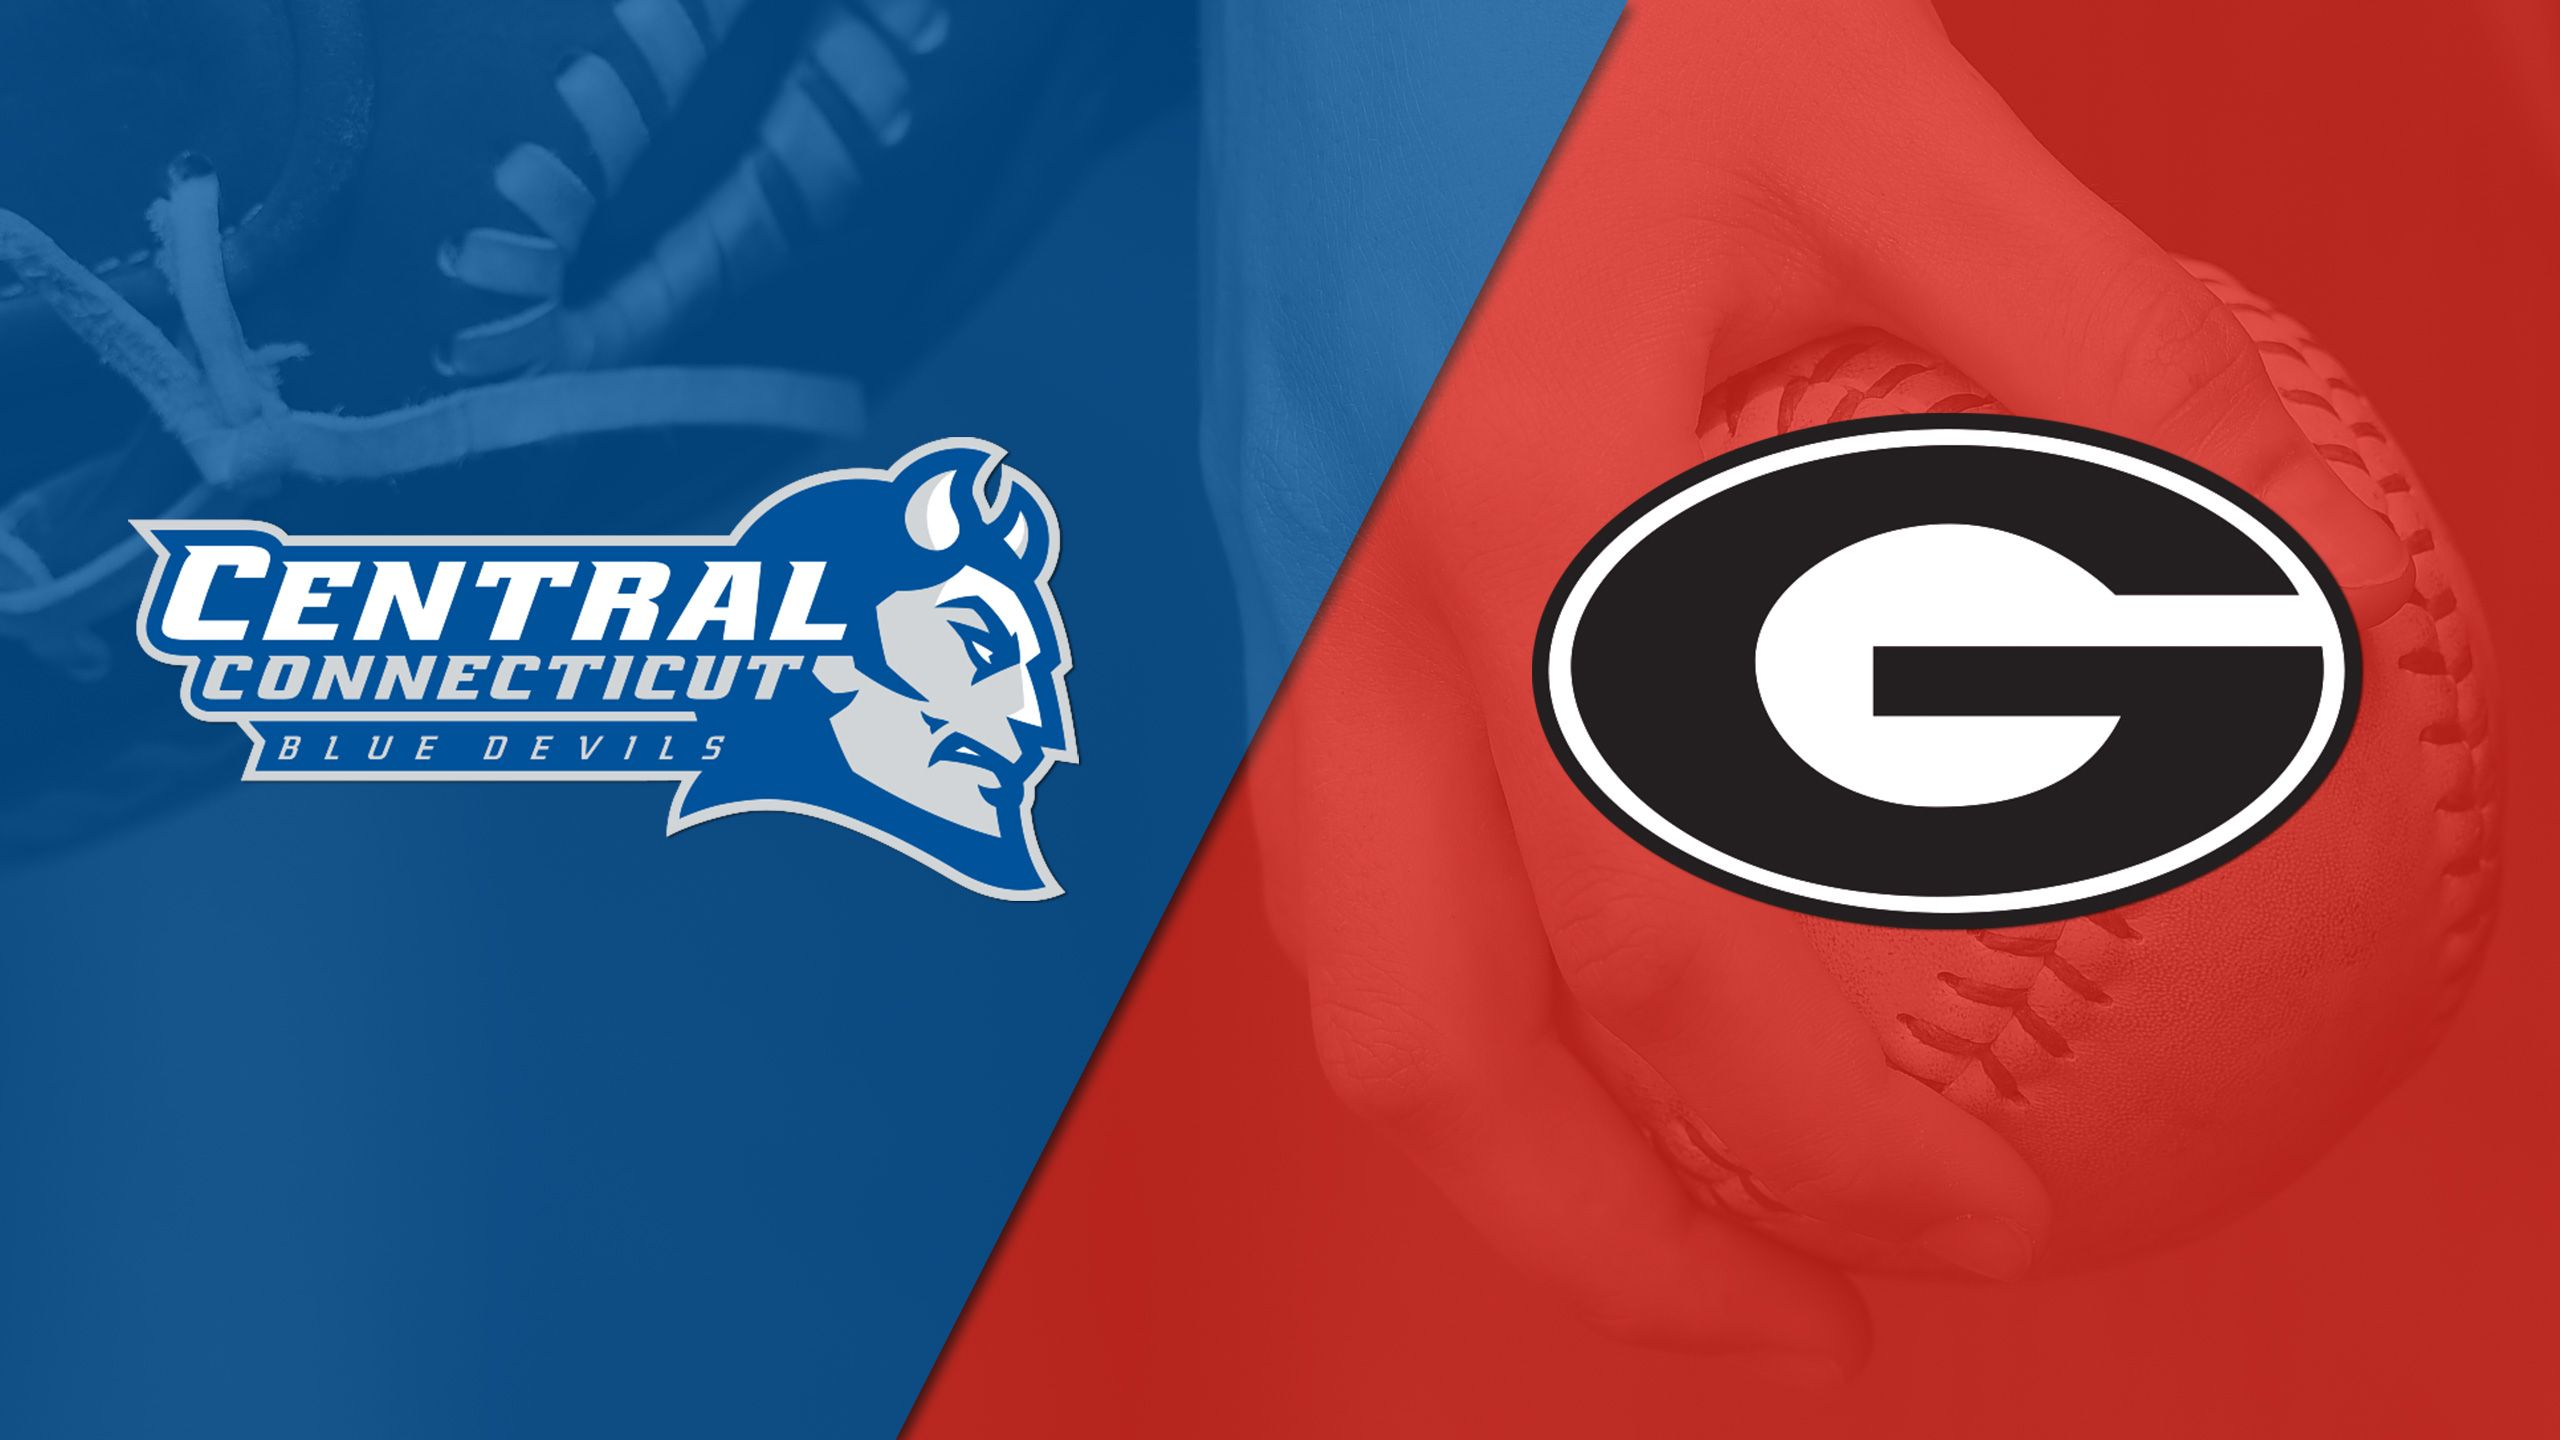 Central Connecticut State vs. #17 Georgia (Softball)